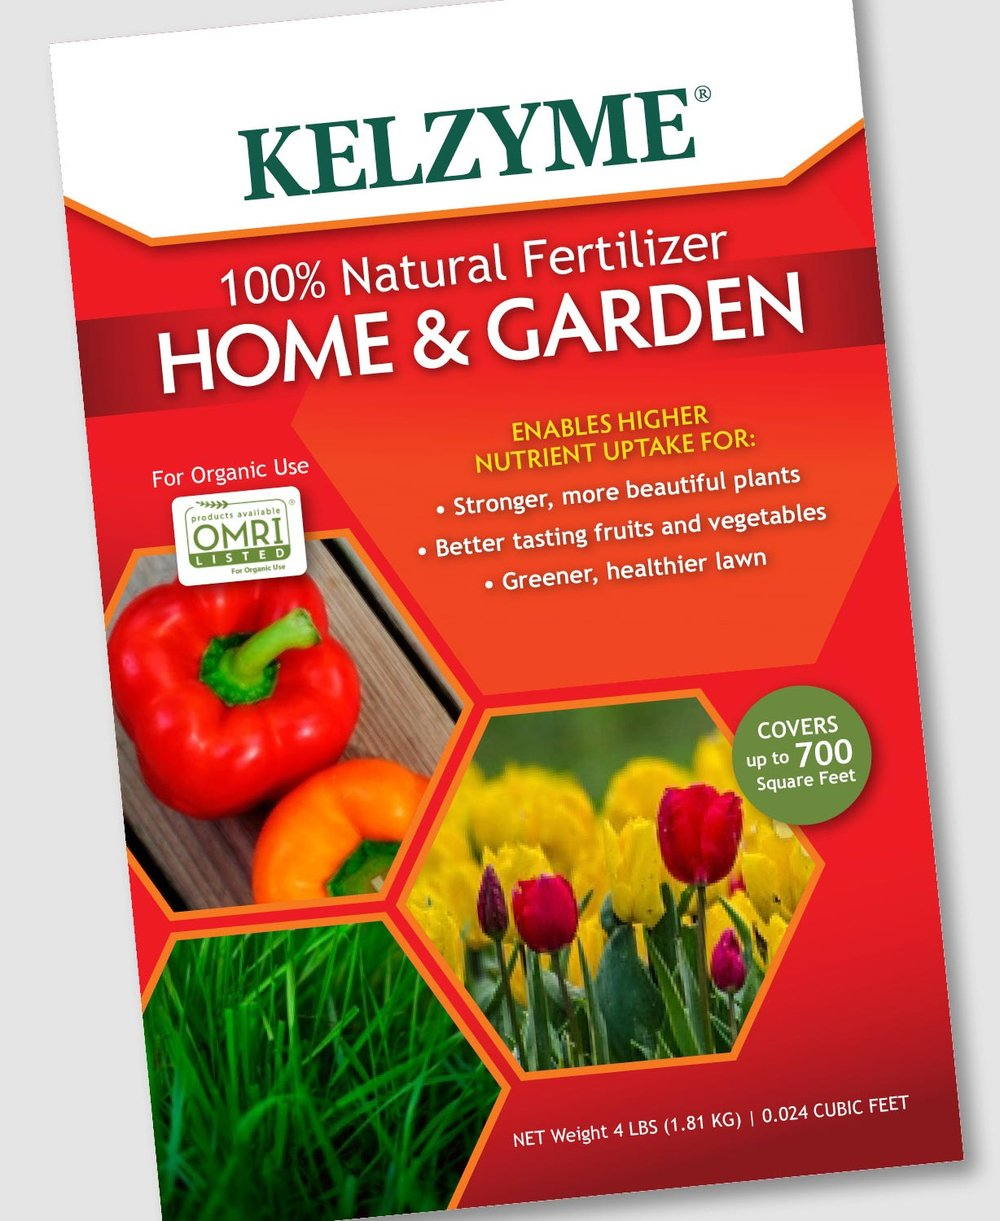 A new package design was created for Kelzyme. To highlight the benefits of their fertilizers, and eventually other products, hexagon shapes are used for the images. This allows each image to shine and can easily be swapped out for others pertaining to a particular product. The red-orange background balances well with the yellow, orange and green of the chosen images and allows the title and brand name to stand out.       work completed for Full Circle Creative